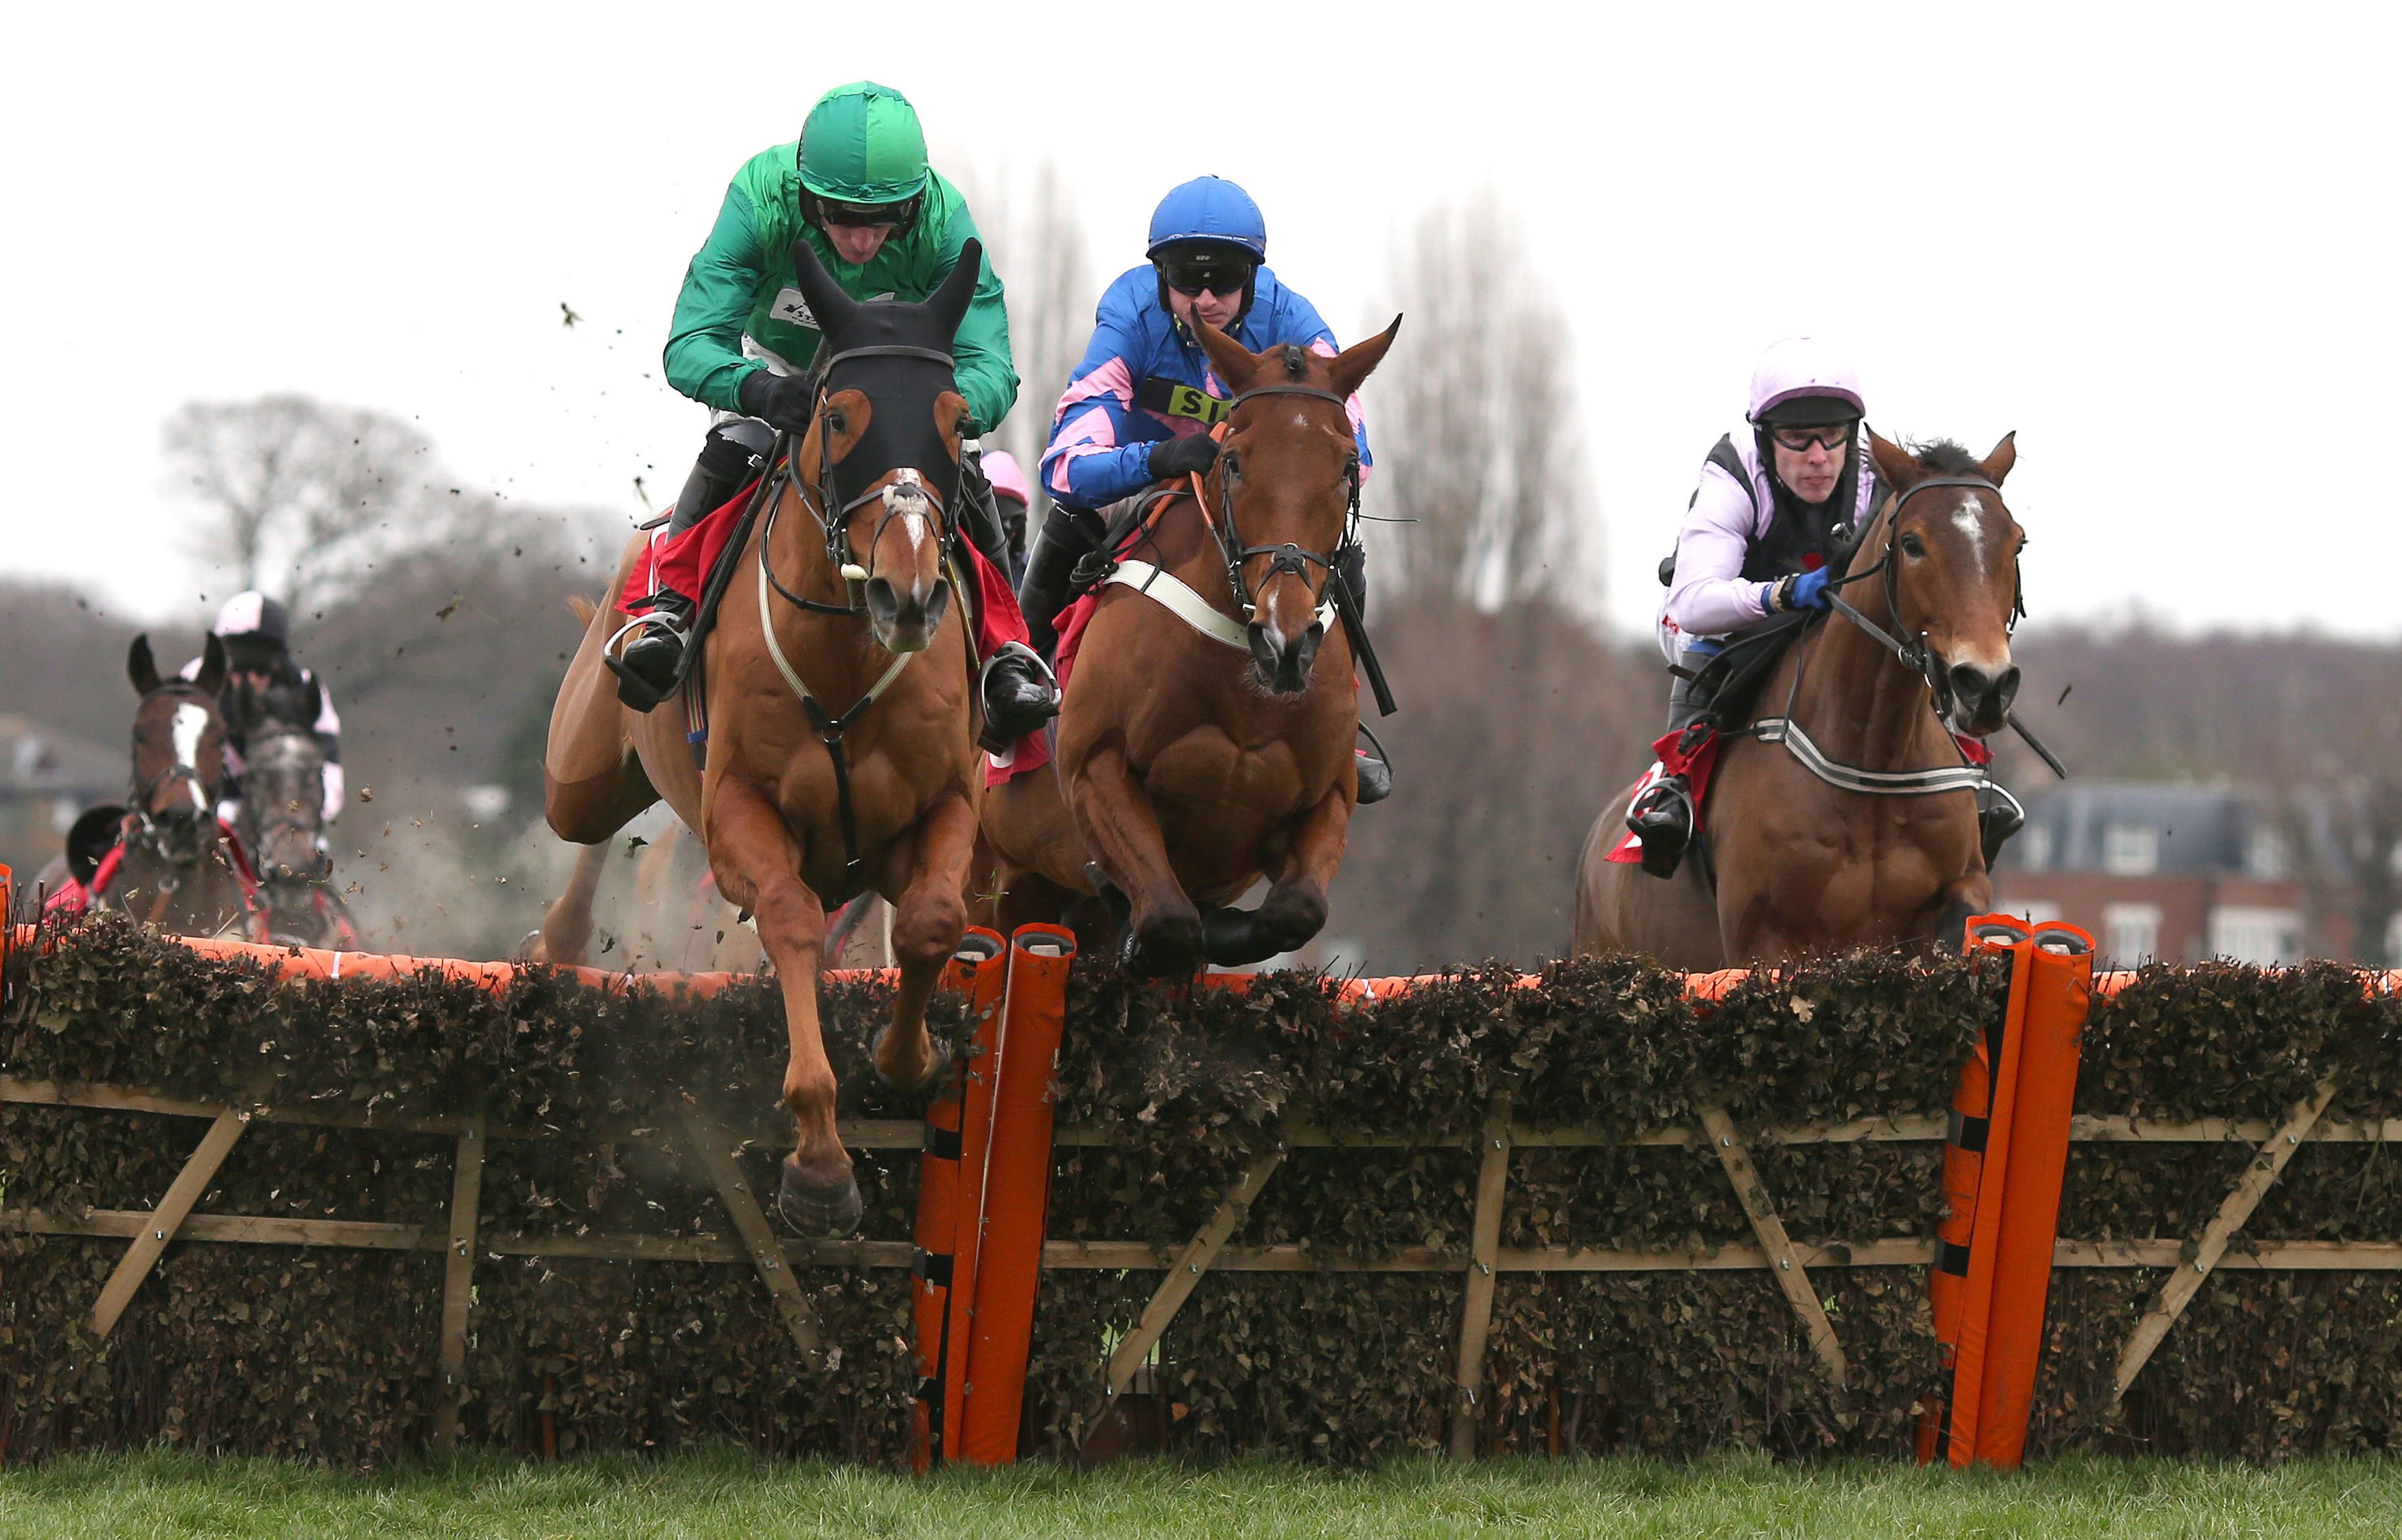 Cheltenham Festival 2019: Boodles Juvenile Handicap Hurdle (The Fred Winter) betting preview: Latest runners, riders, odds and trainer quotes for the final field